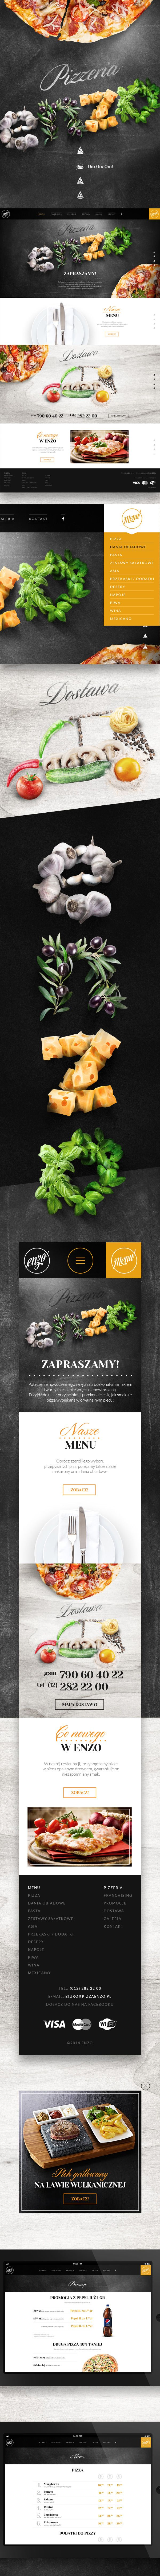 Pizzeria ENZO on Web Design Served